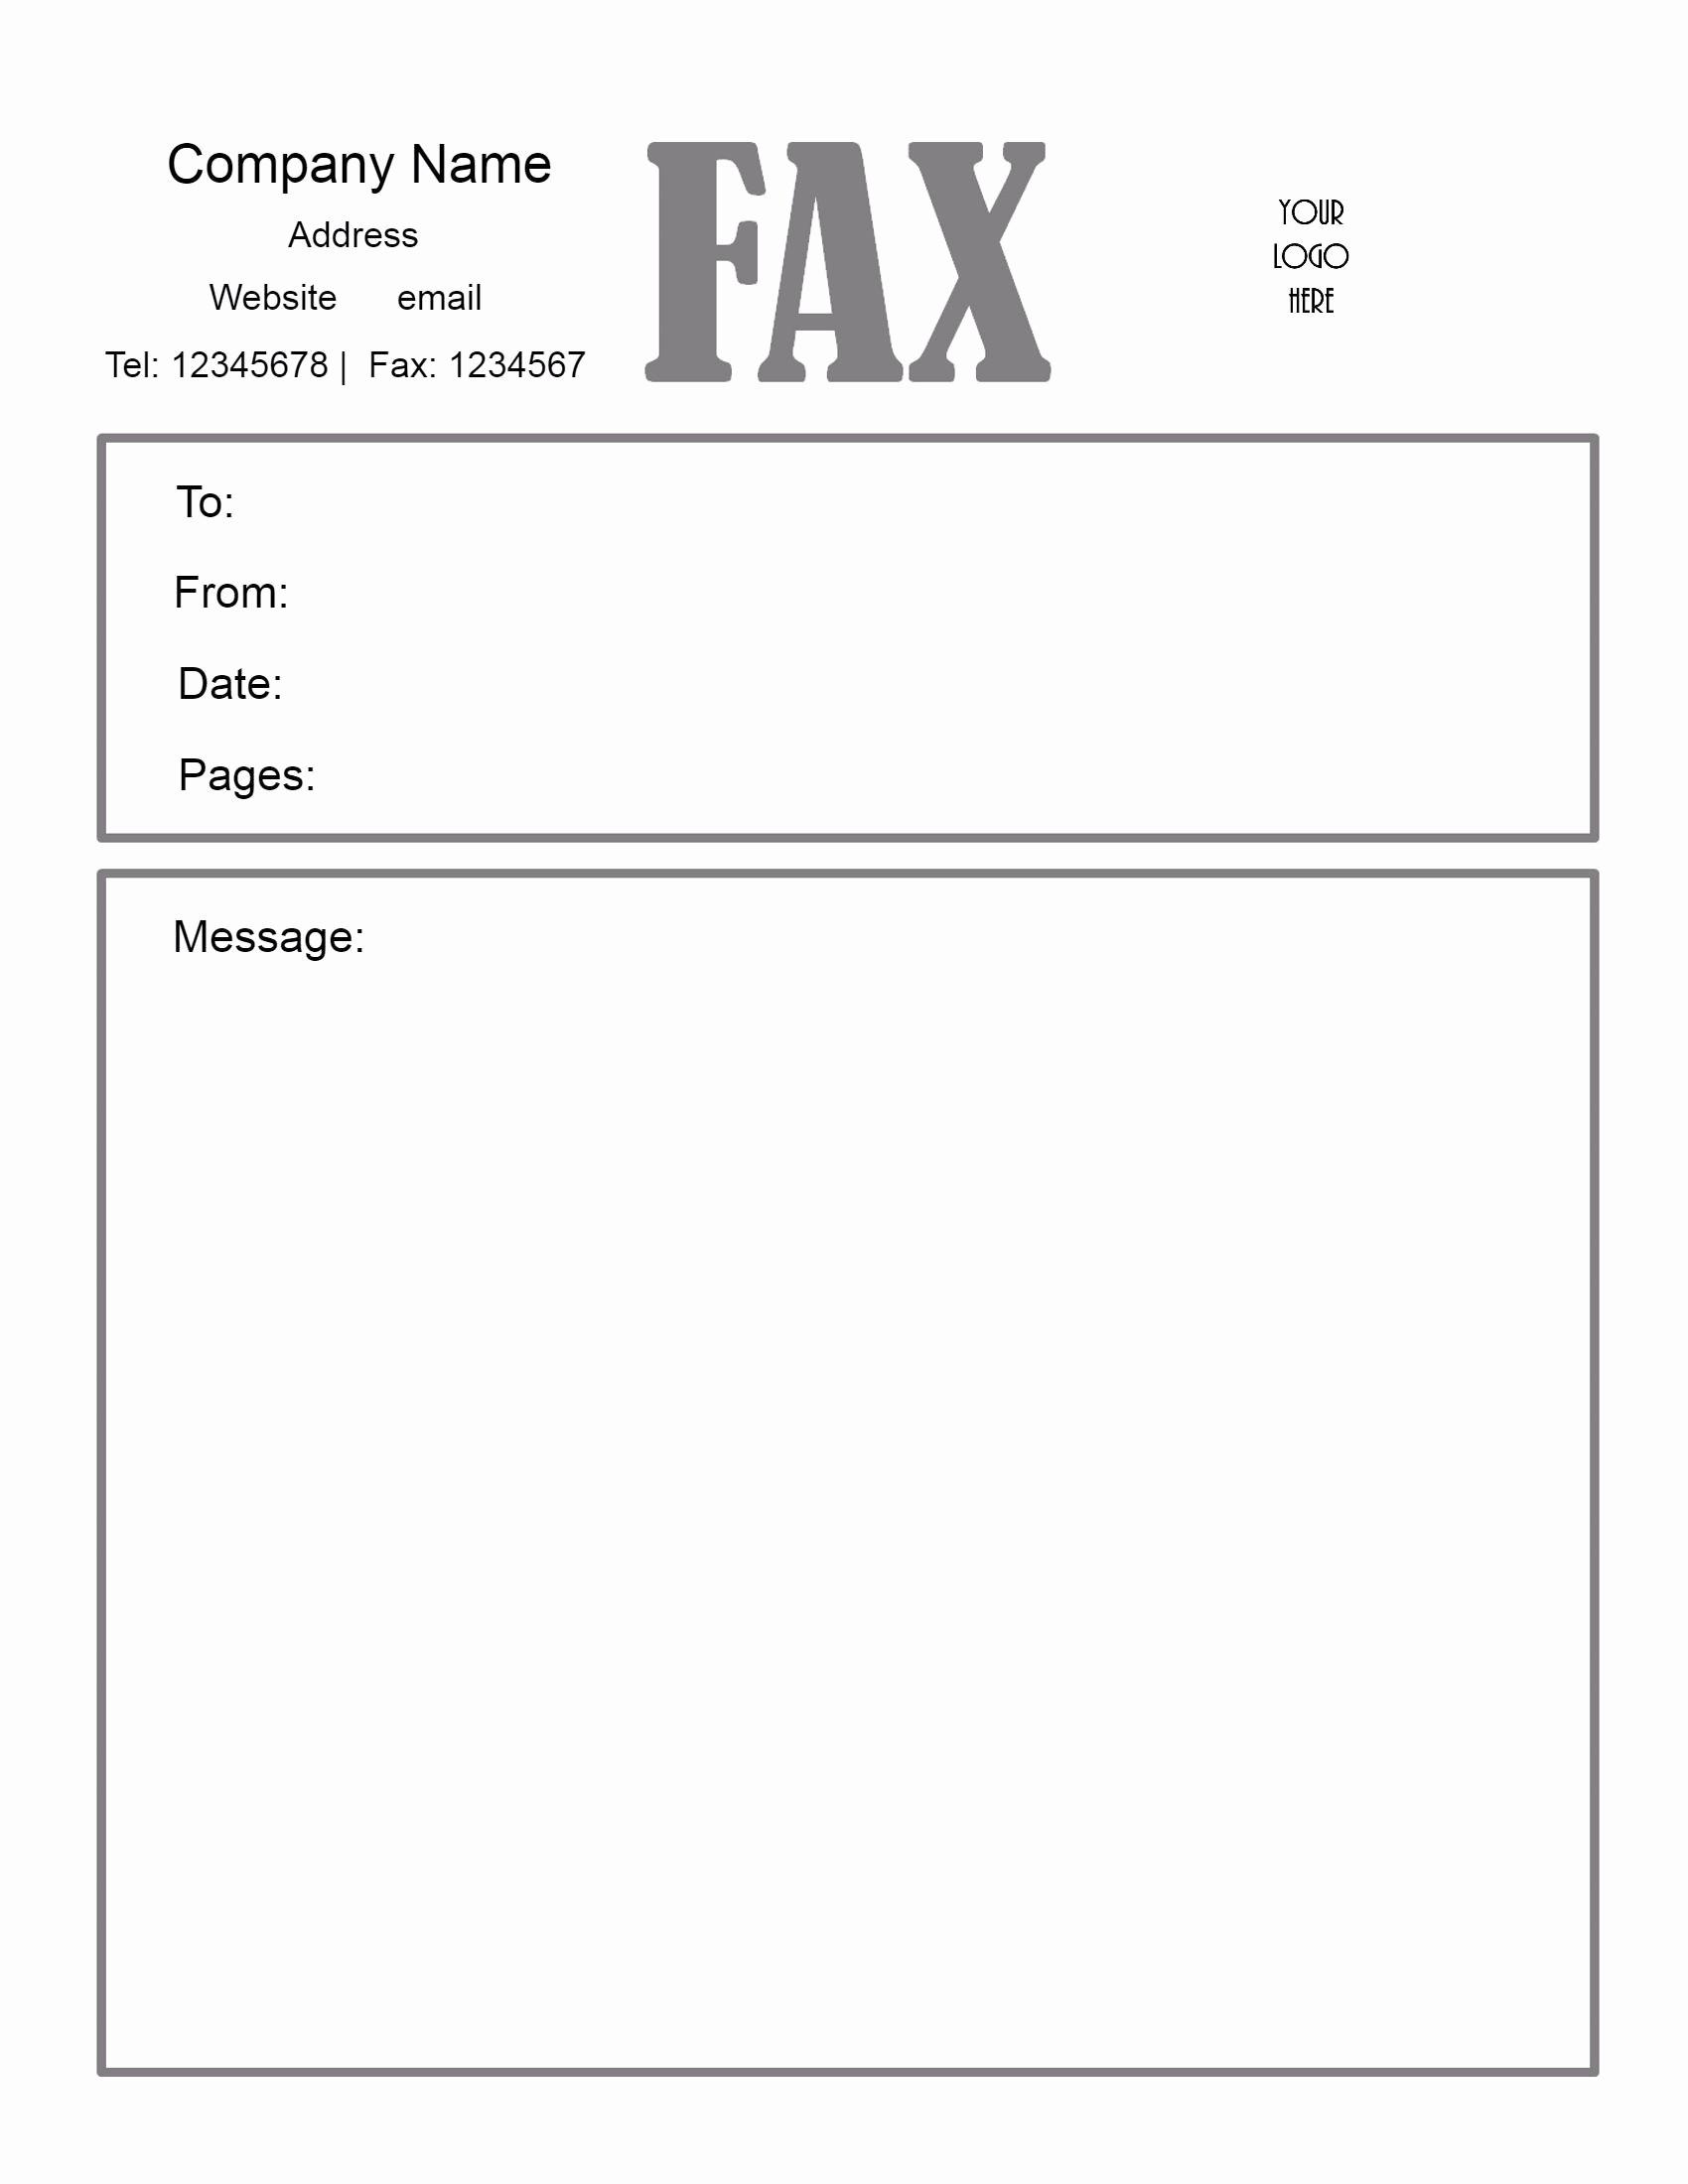 Fax Cover Sheet Download Free Inspirational Fax Cover Sheet – Download Fax Cover Sheet Fax Cover